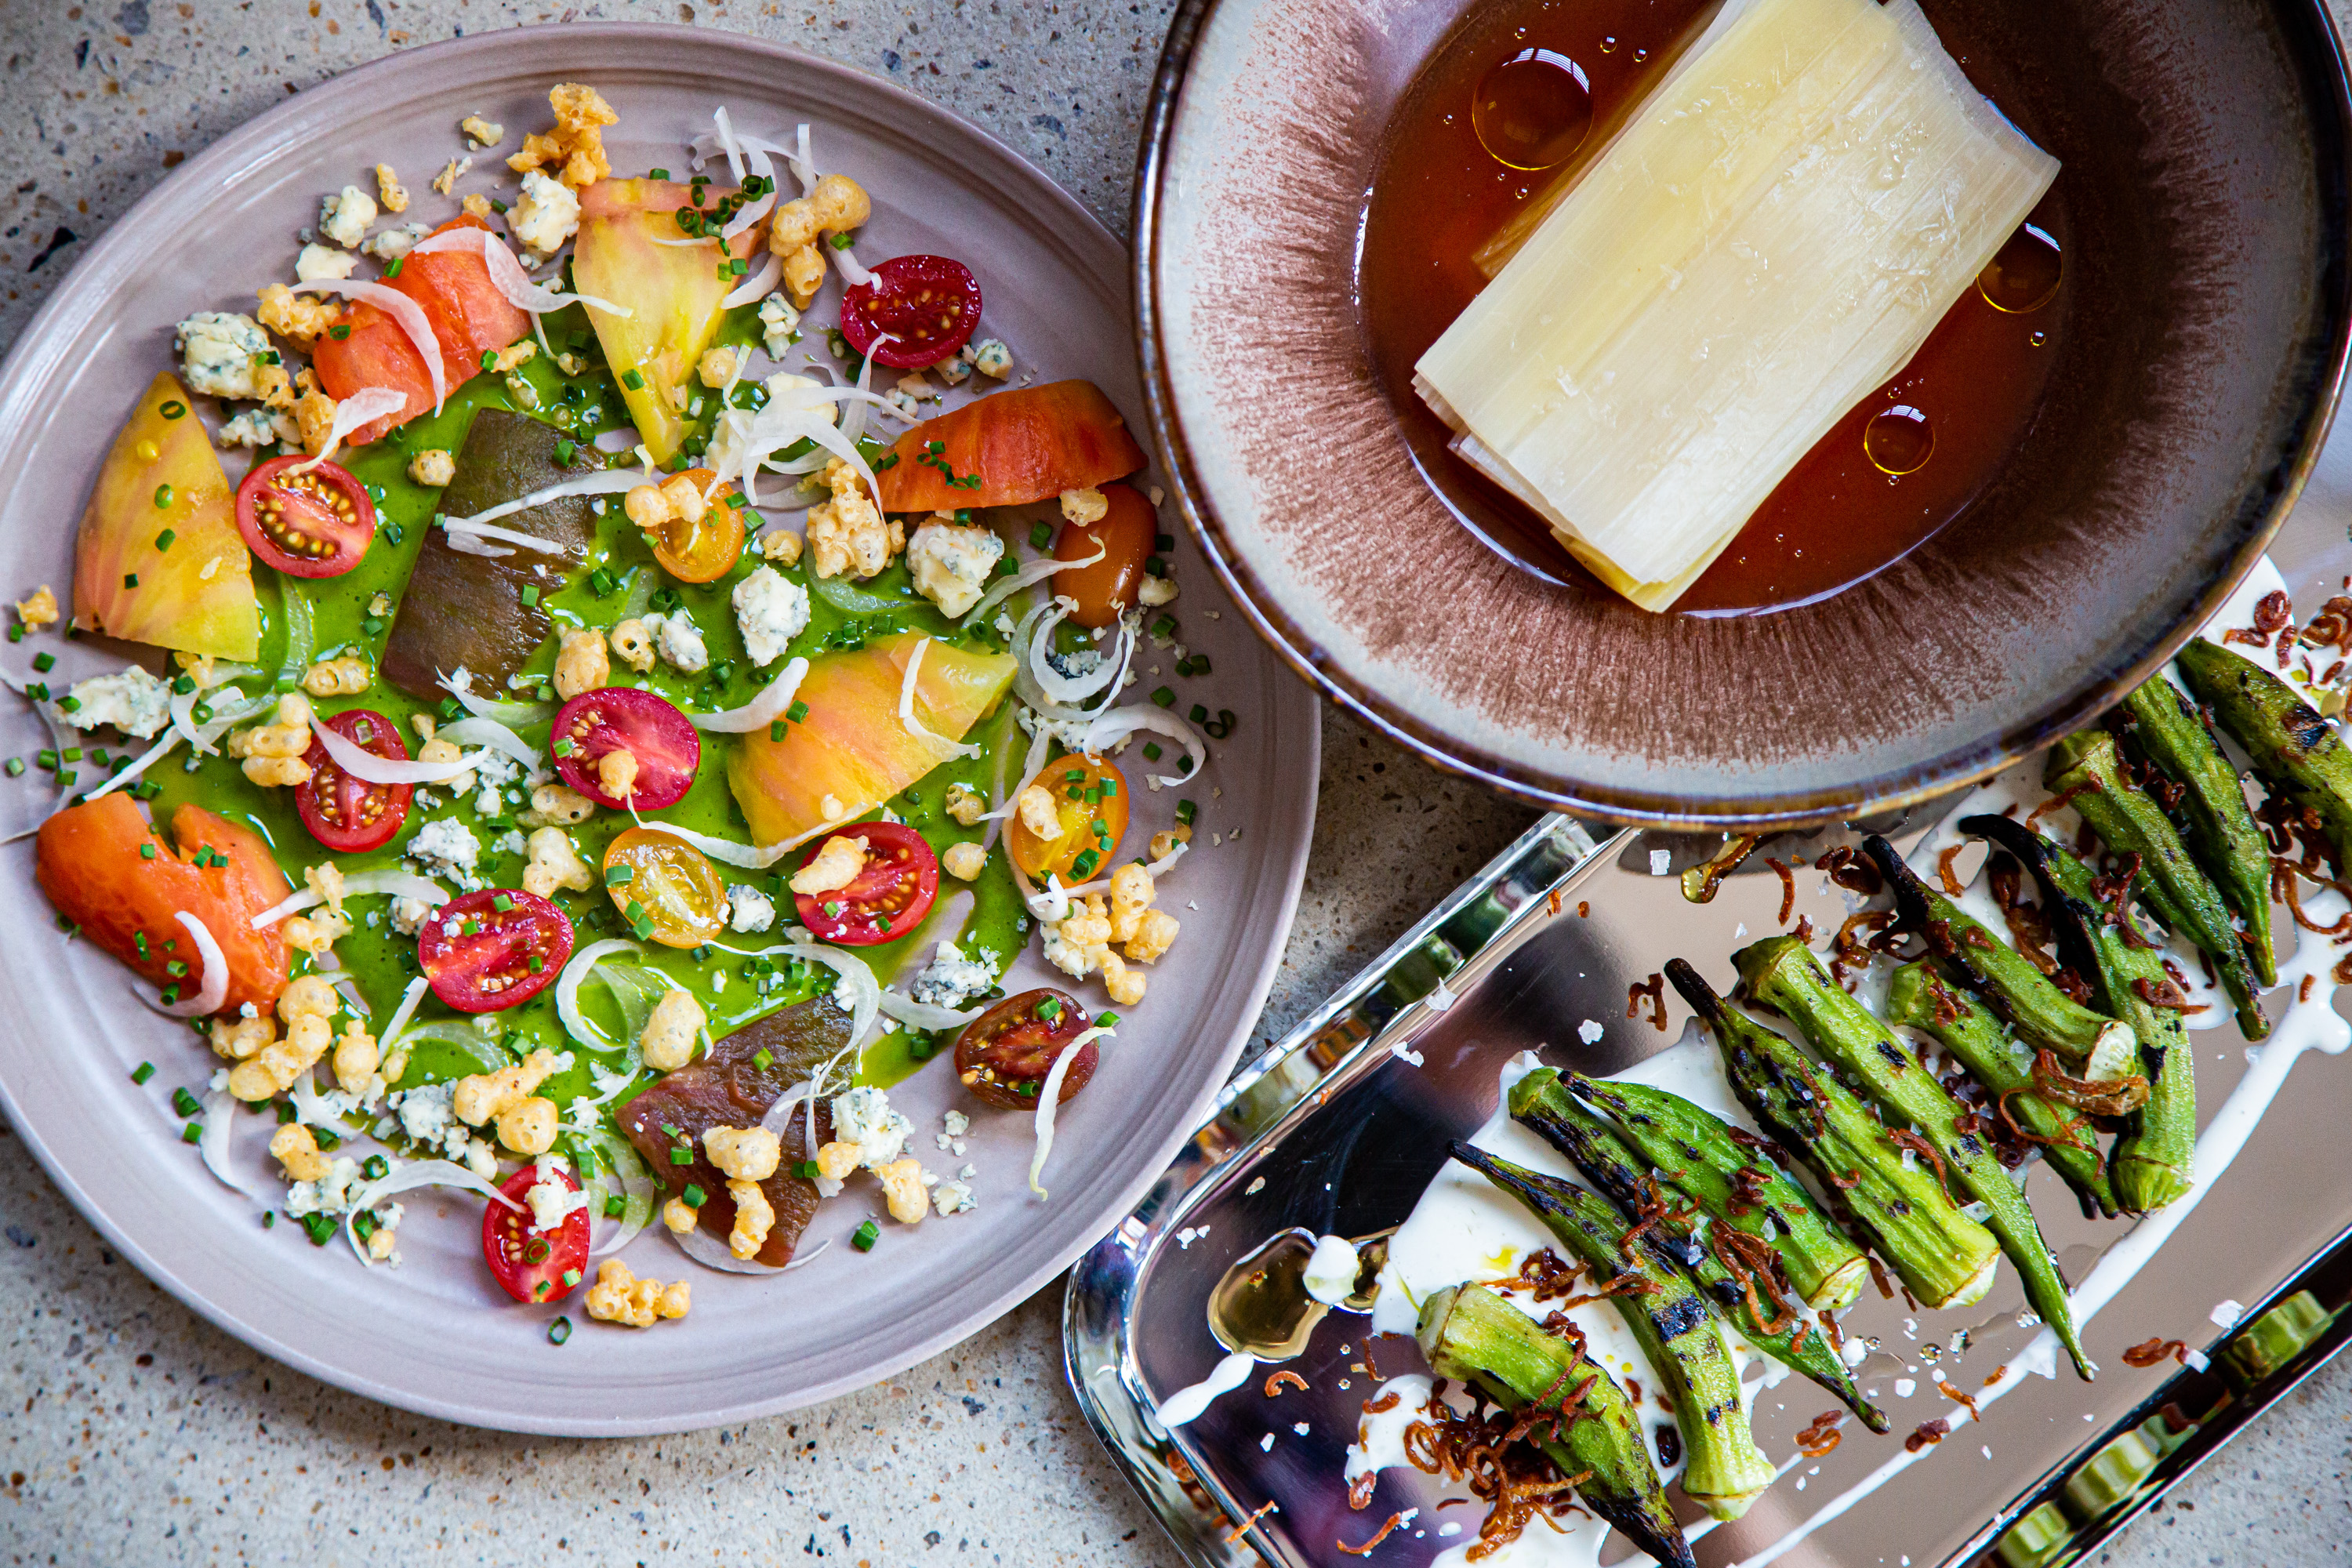 Vegetables Take Center Stage at the Newly-Opened Redbird